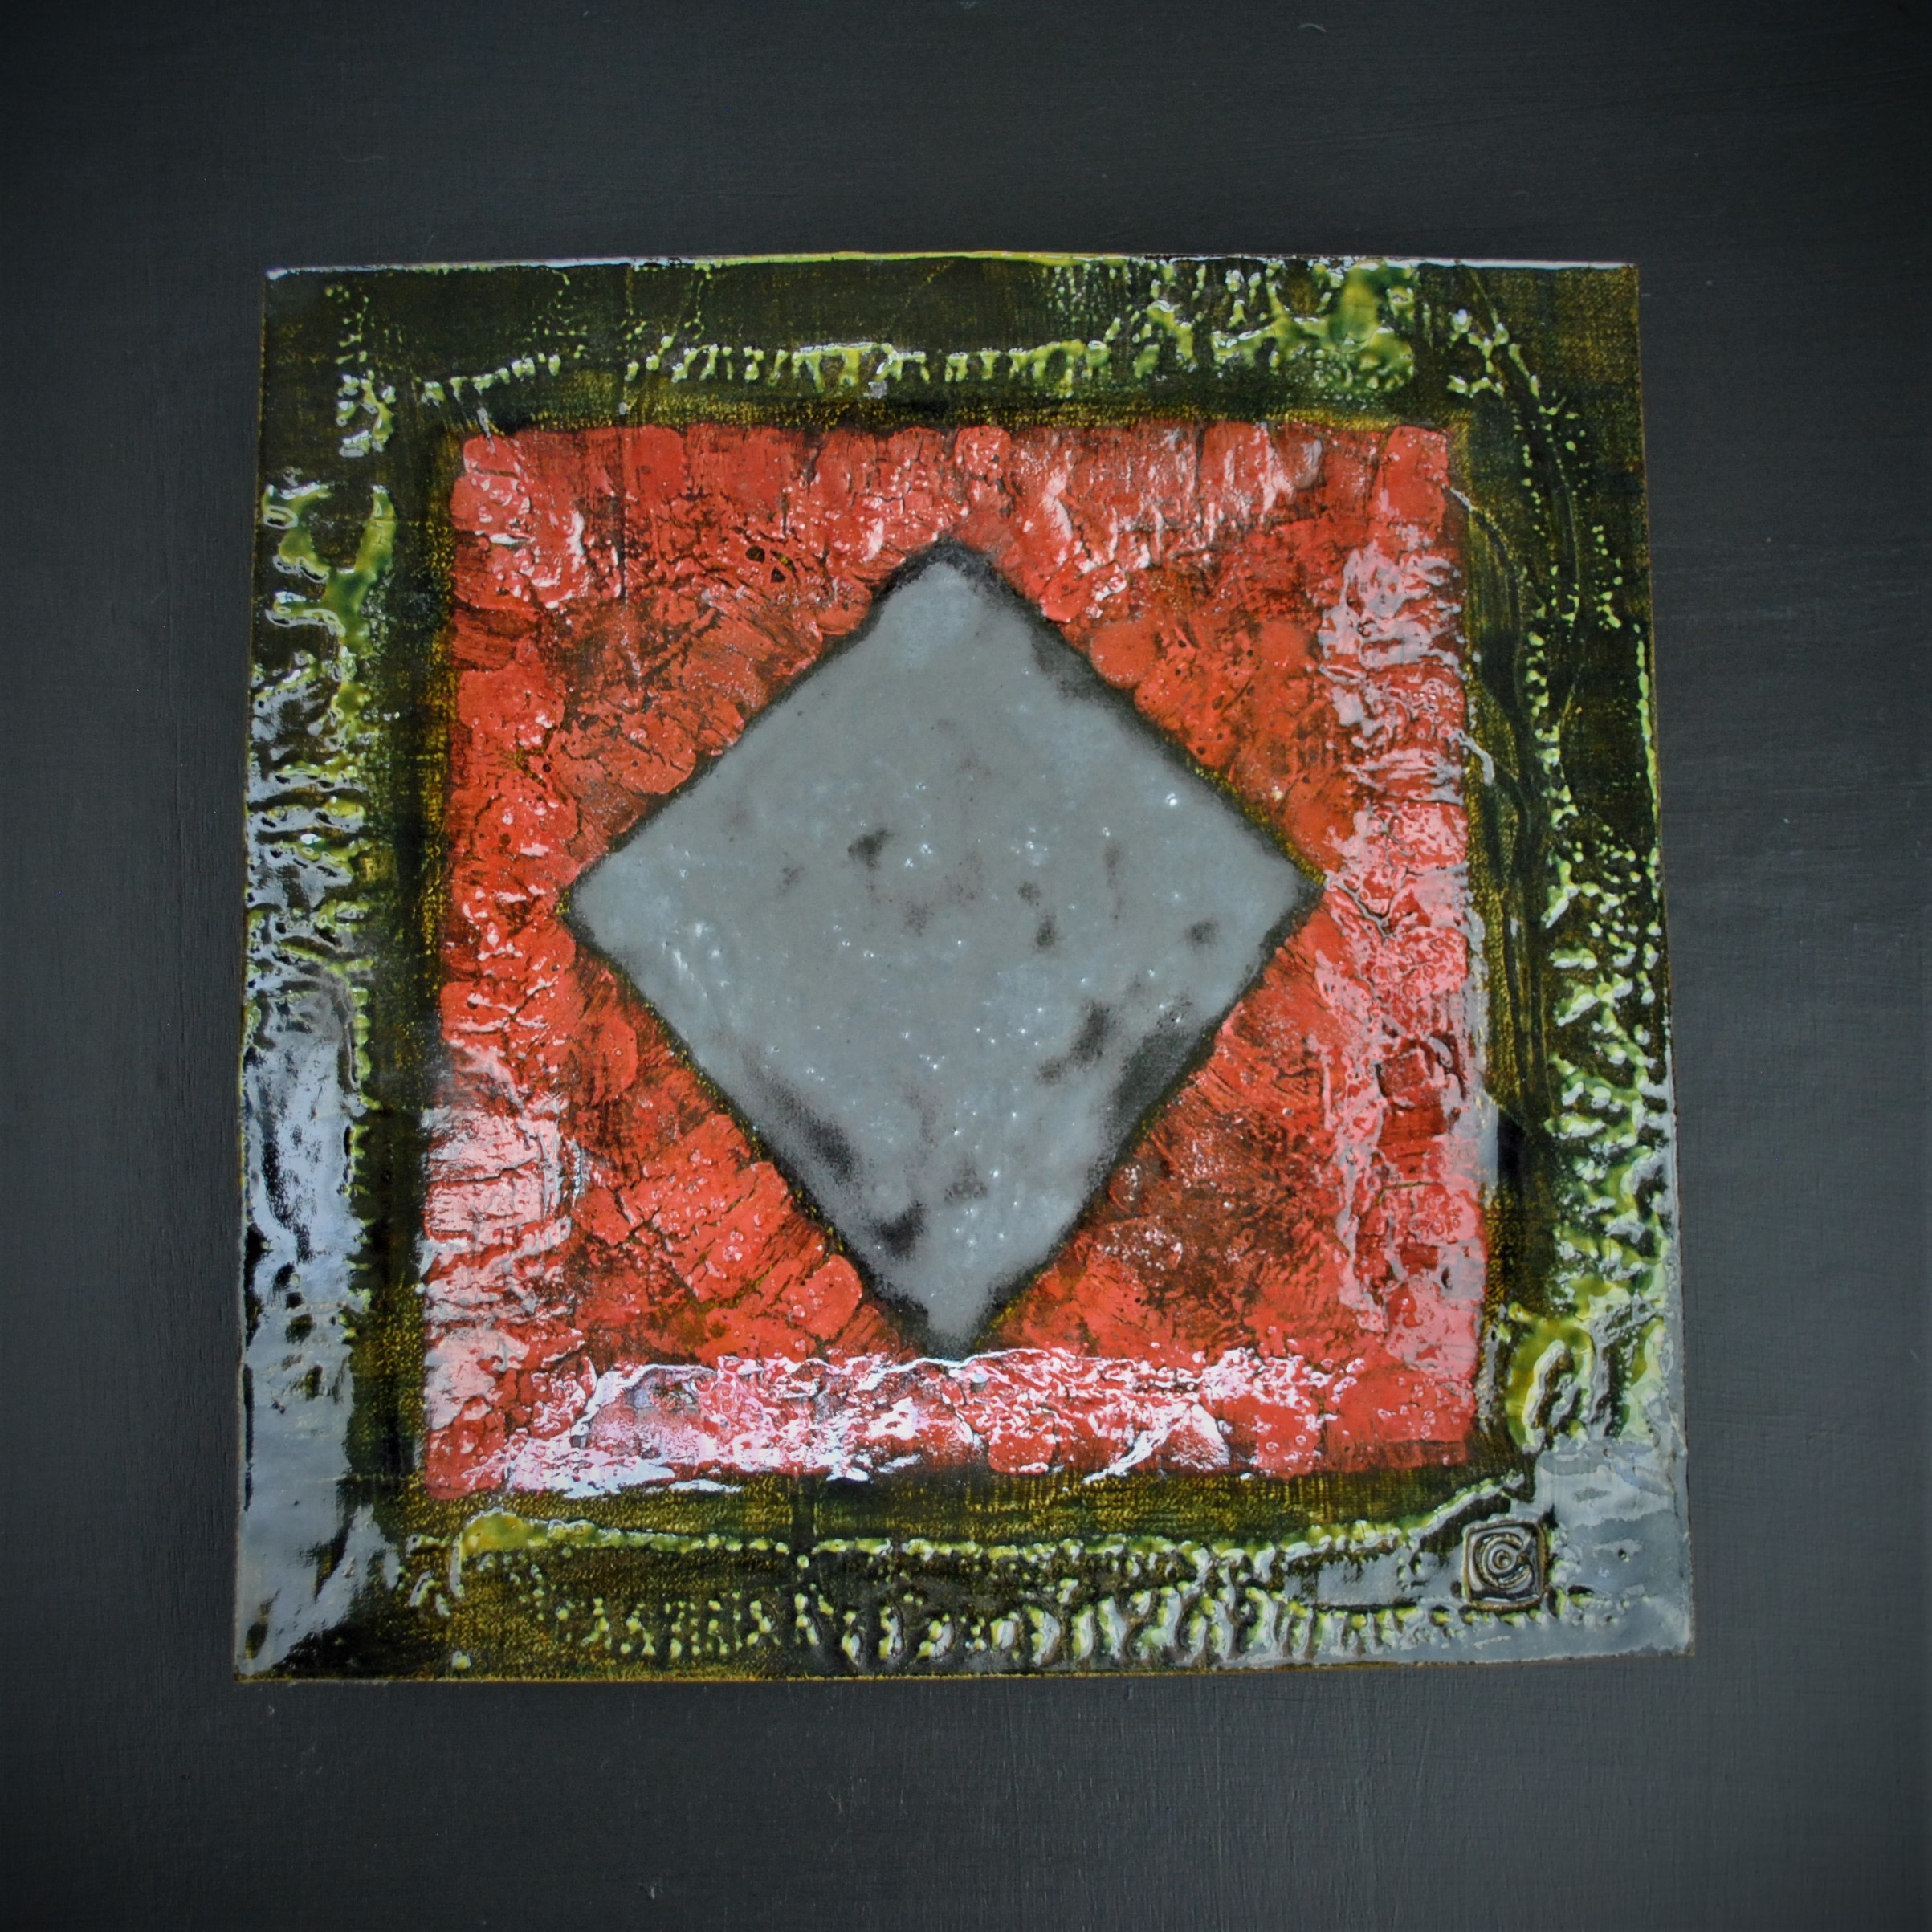 Mike Cain 2019 Silver diamond on red with green border. (Square edit) DSC_6219 (2).JPG